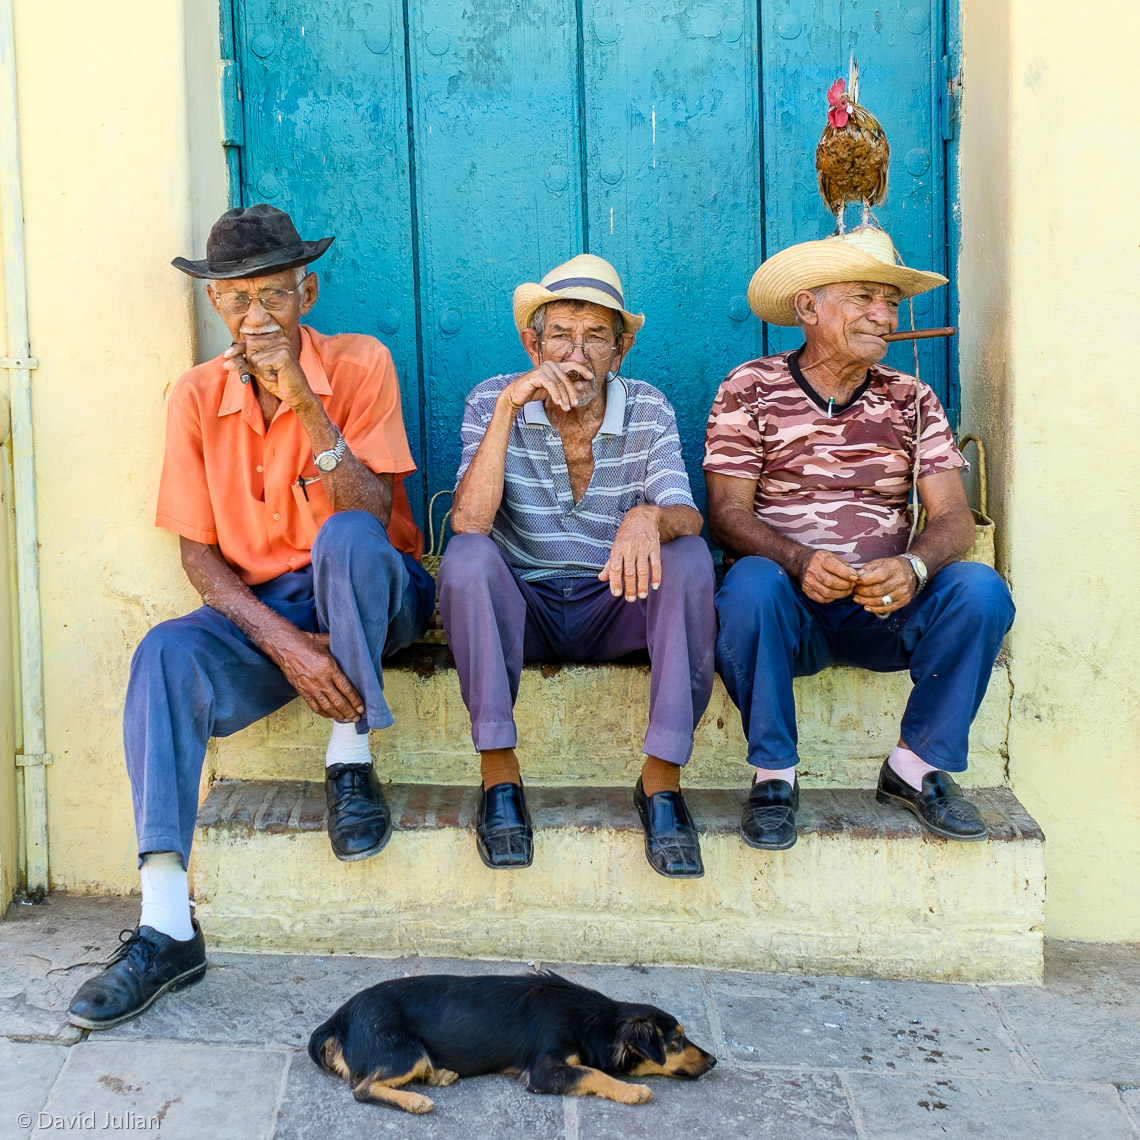 05_Cuba,Trinidad_old_men+rooster+dog-2766-DJeditAPF1860px